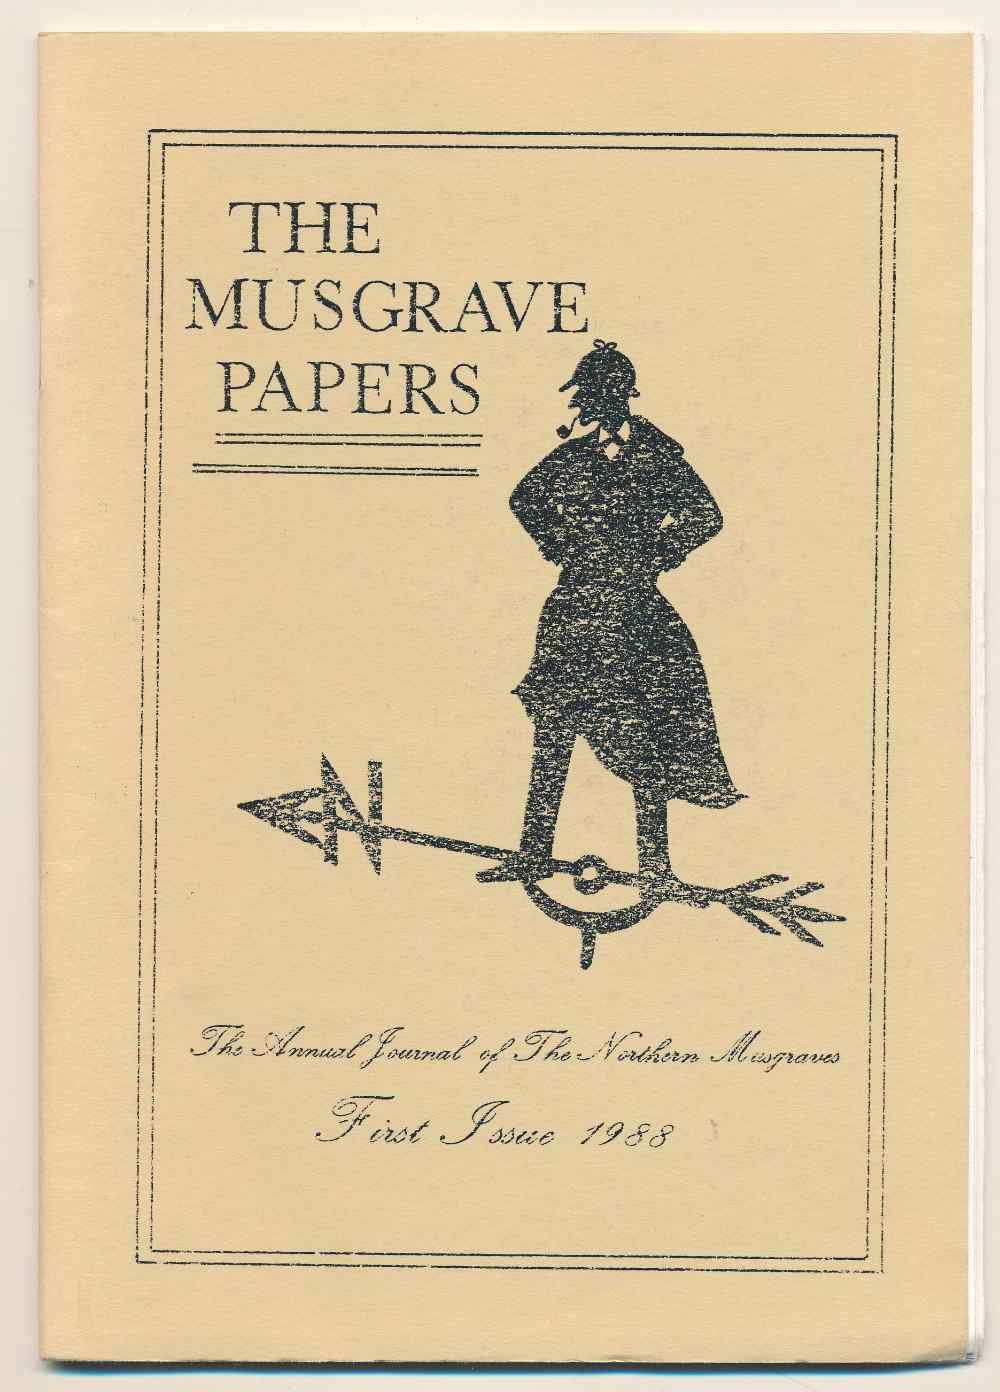 The Musgrave Papers